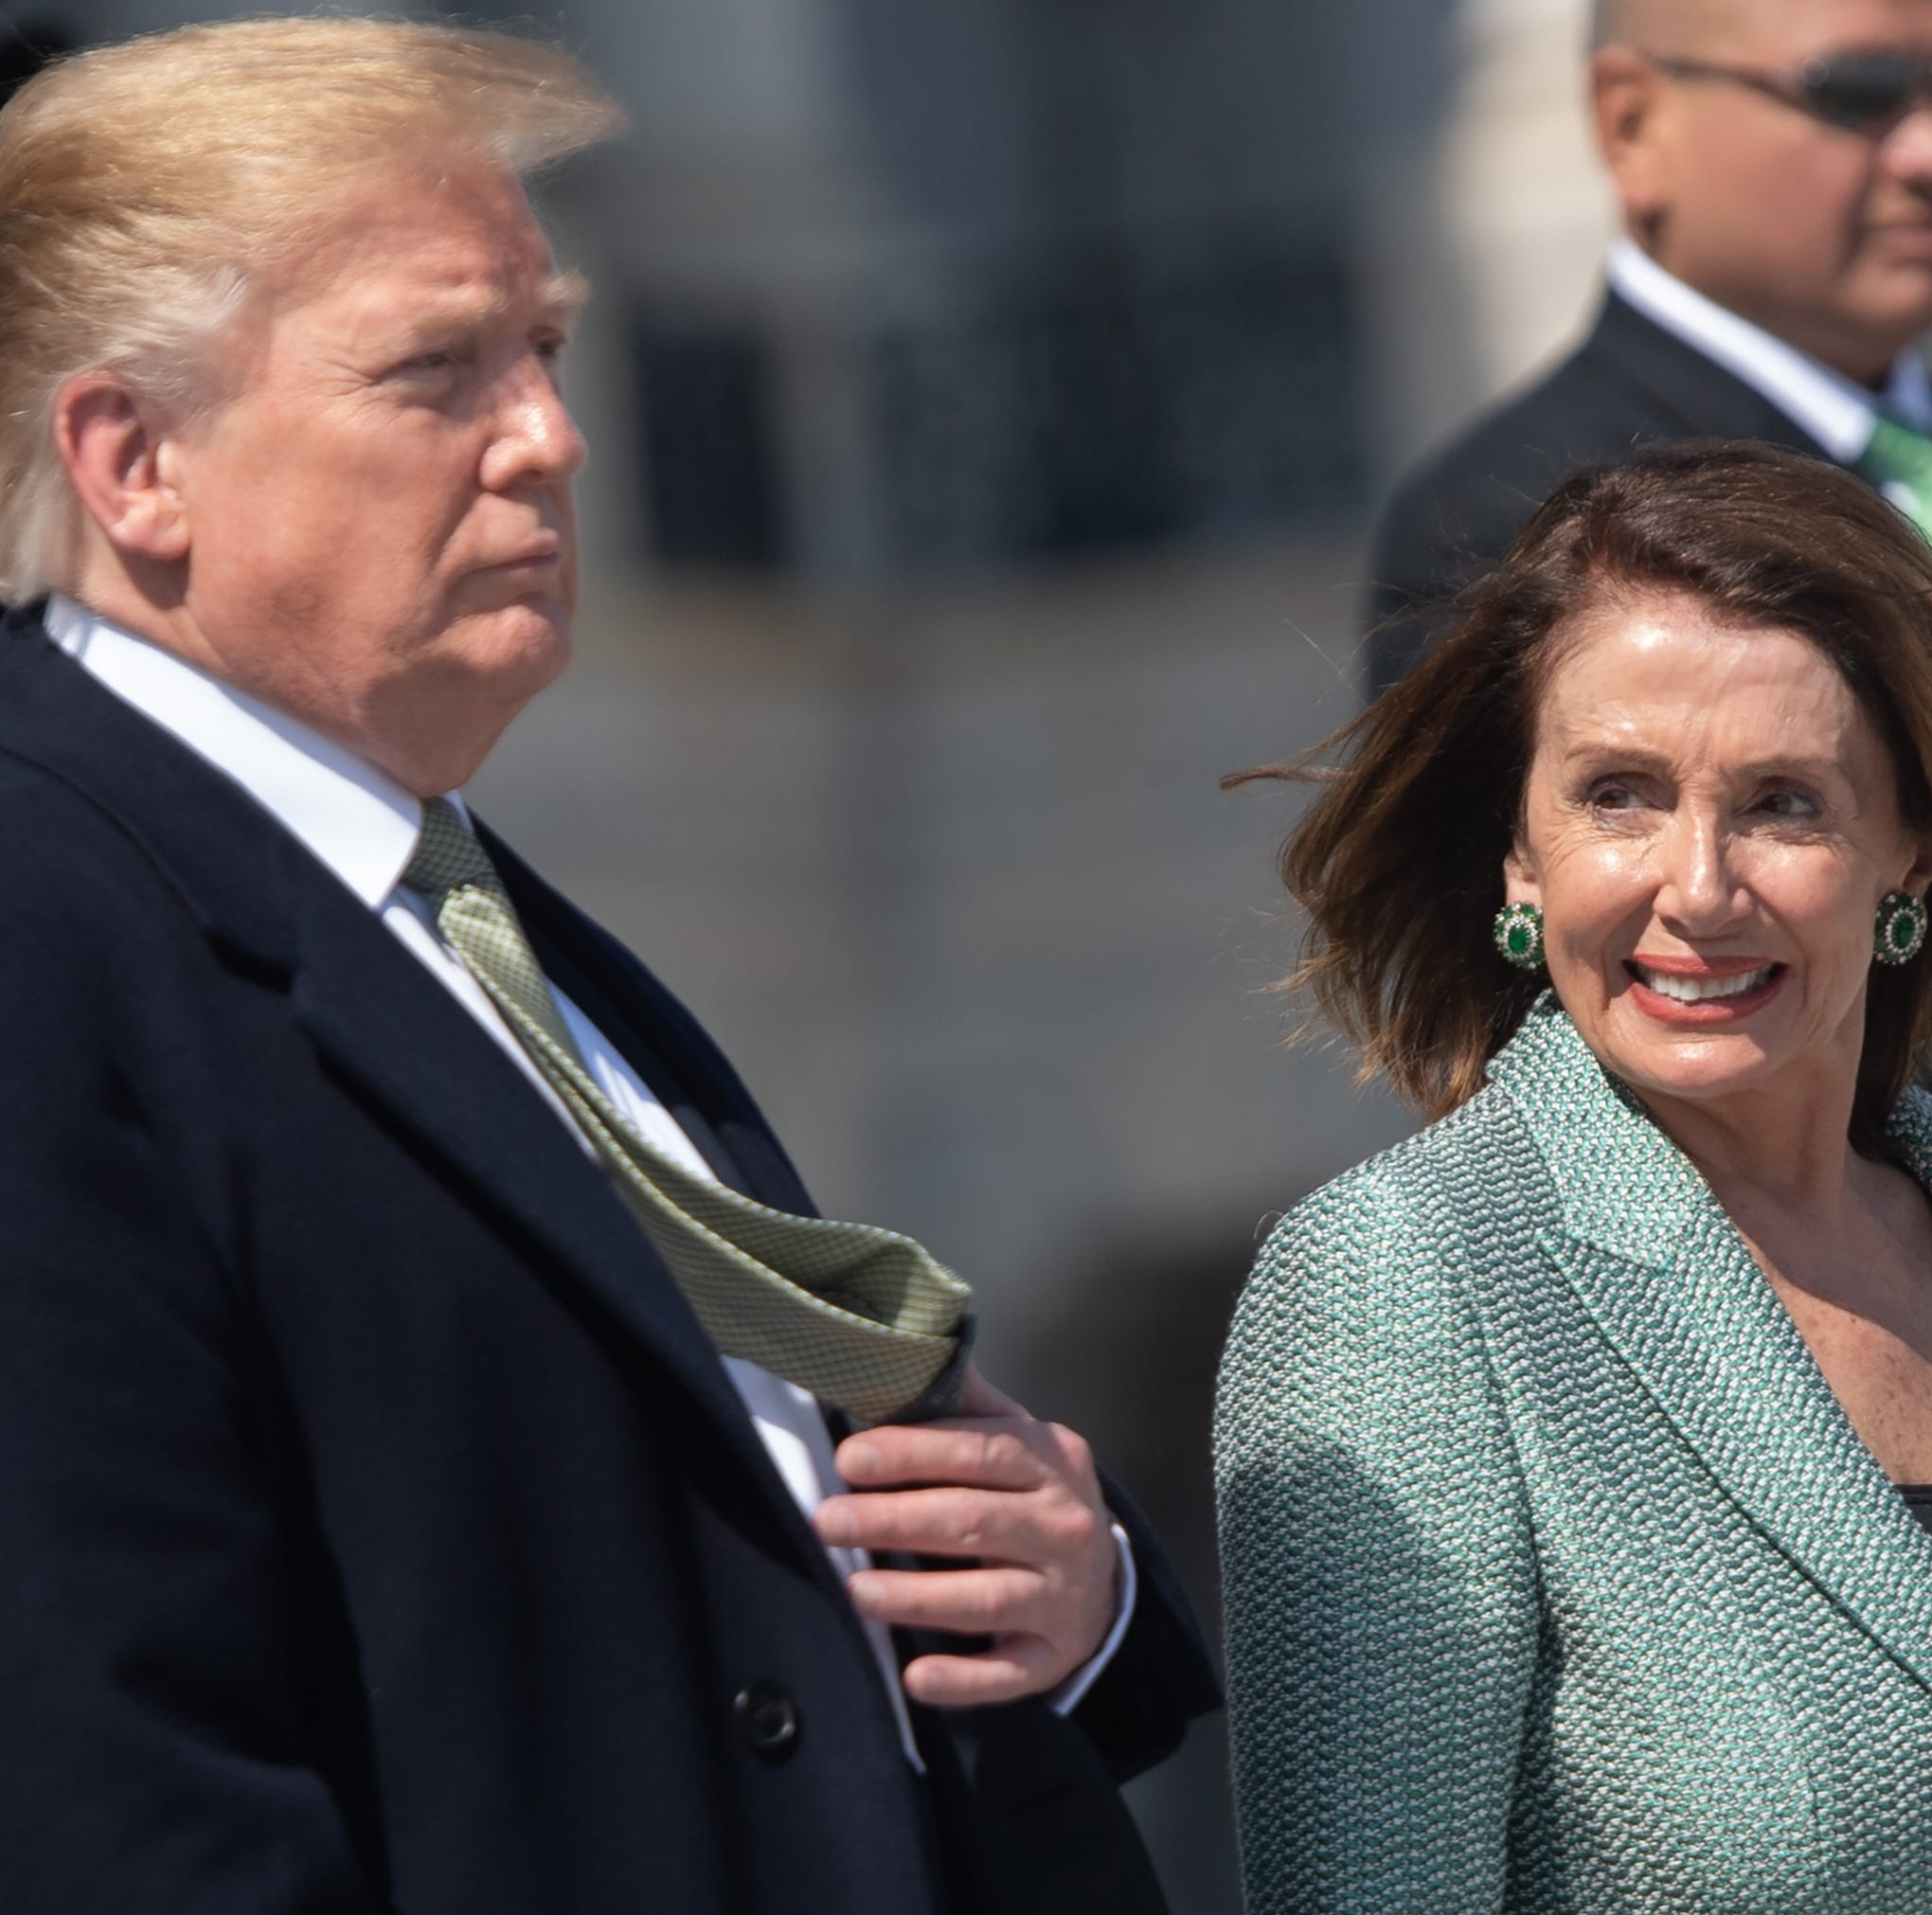 "(FILES) In this file photo taken on March 14, 2019 US President Donald Trump walks alongside Speaker of the House Nancy Pelosi as he departs following the Friends of Ireland Luncheon in honor of Irish Prime Minister Leo Varadkar at the US Capitol in Washington, DC. - Top US Democrats on March 22, 2019, demanded the full special counsel report on Russian interference in the 2016 election be released publicly with no ""sneak preview"" for President Donald Trump. Many of the party's challengers for the 2020 presidential nomination, including senators Bernie Sanders and Kamala Harris, swiftly joined calls for full transparency after Special Counsel Robert Mueller submitted his report to Attorney General Bill Barr. ""It is imperative for (Attorney General Bill) Barr to make the full report public and provide its underlying documentation and findings to Congress,"" House Speaker Nancy Pelosi and Senate Minority Leader Chuck Schumer said in a joint statement. (Photo by SAUL LOEB / AFP)SAUL LOEB/AFP/Getty Images ORIG FILE ID: AFP_1EY9BK"